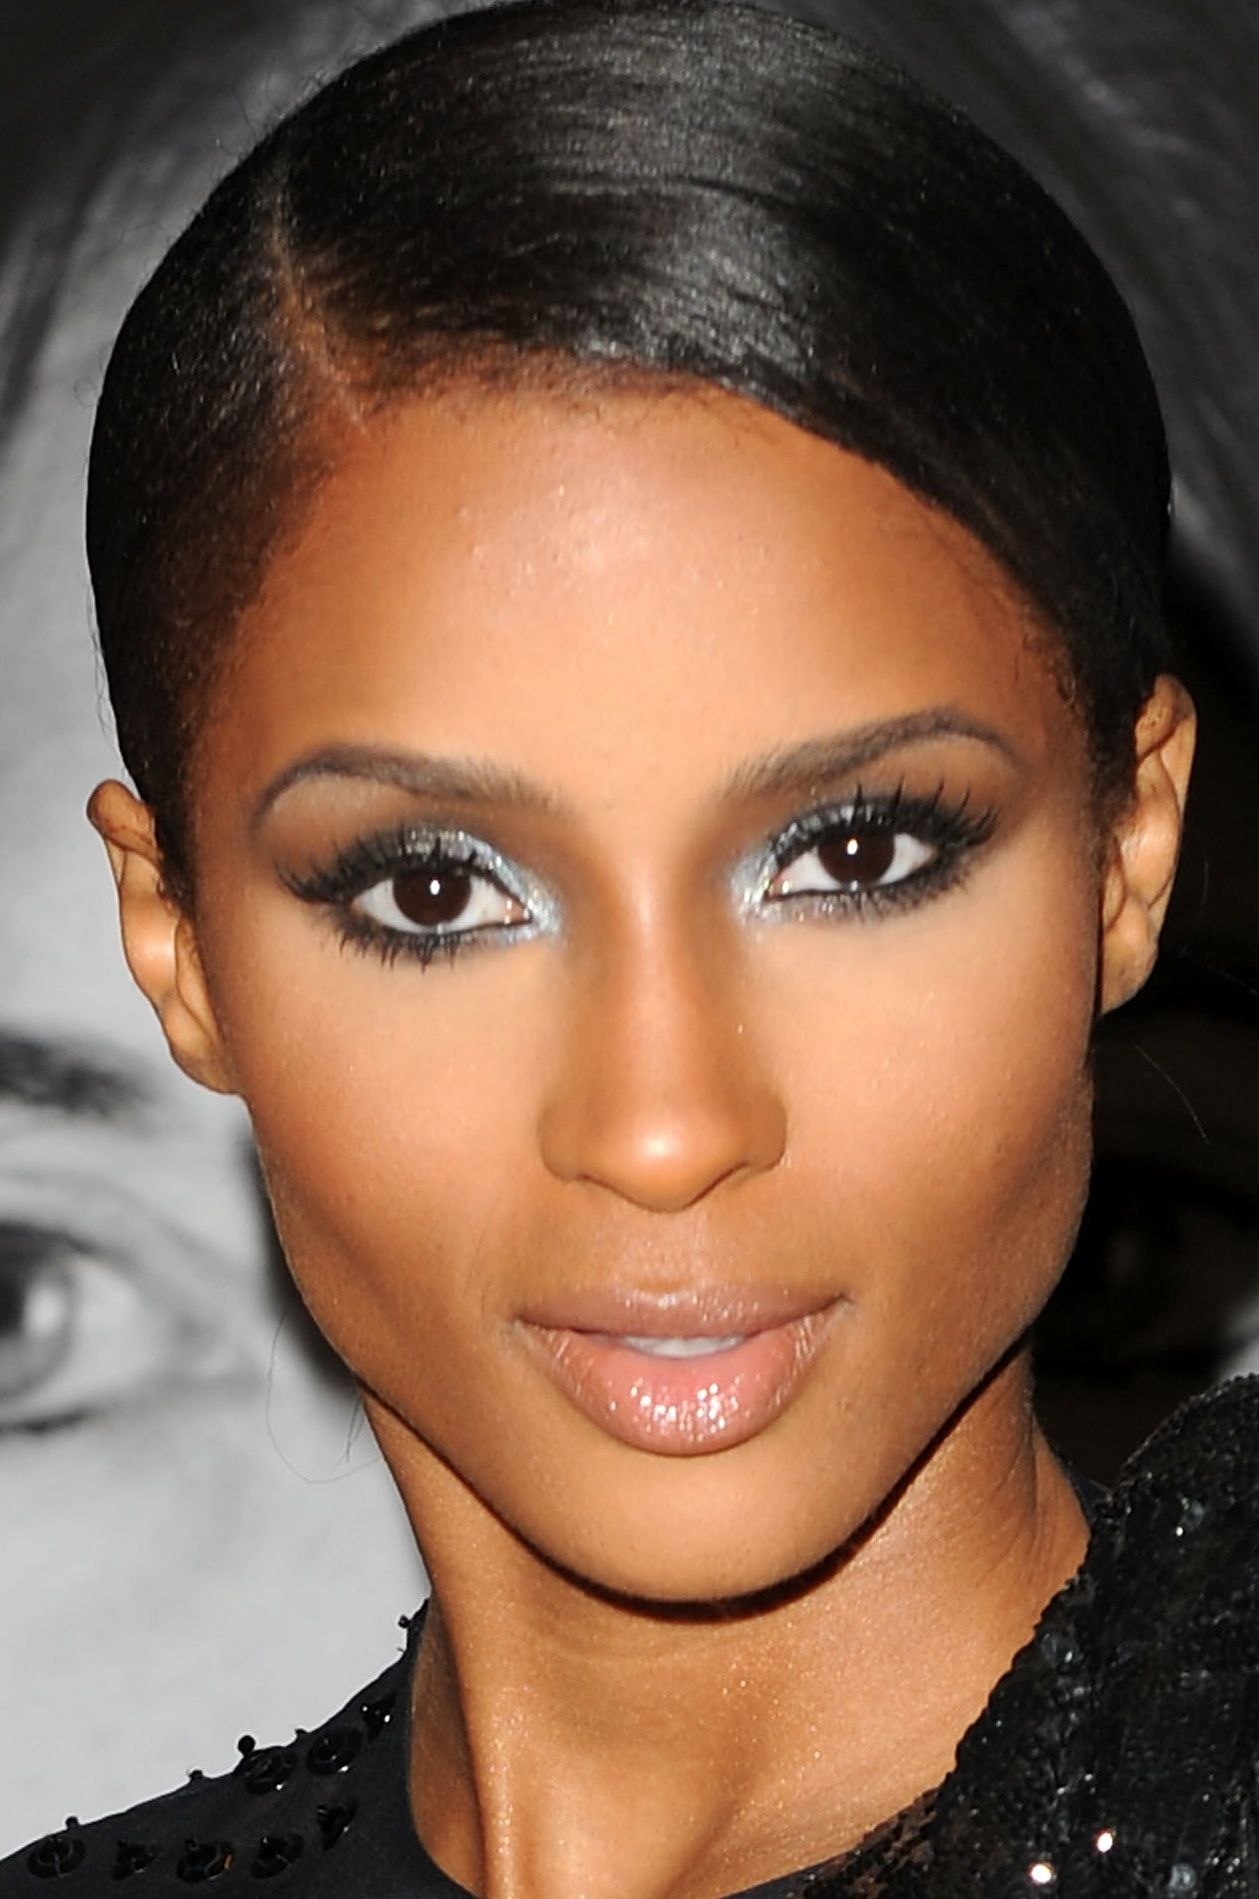 A perfect graduated smoky eye I must try soon! Skin